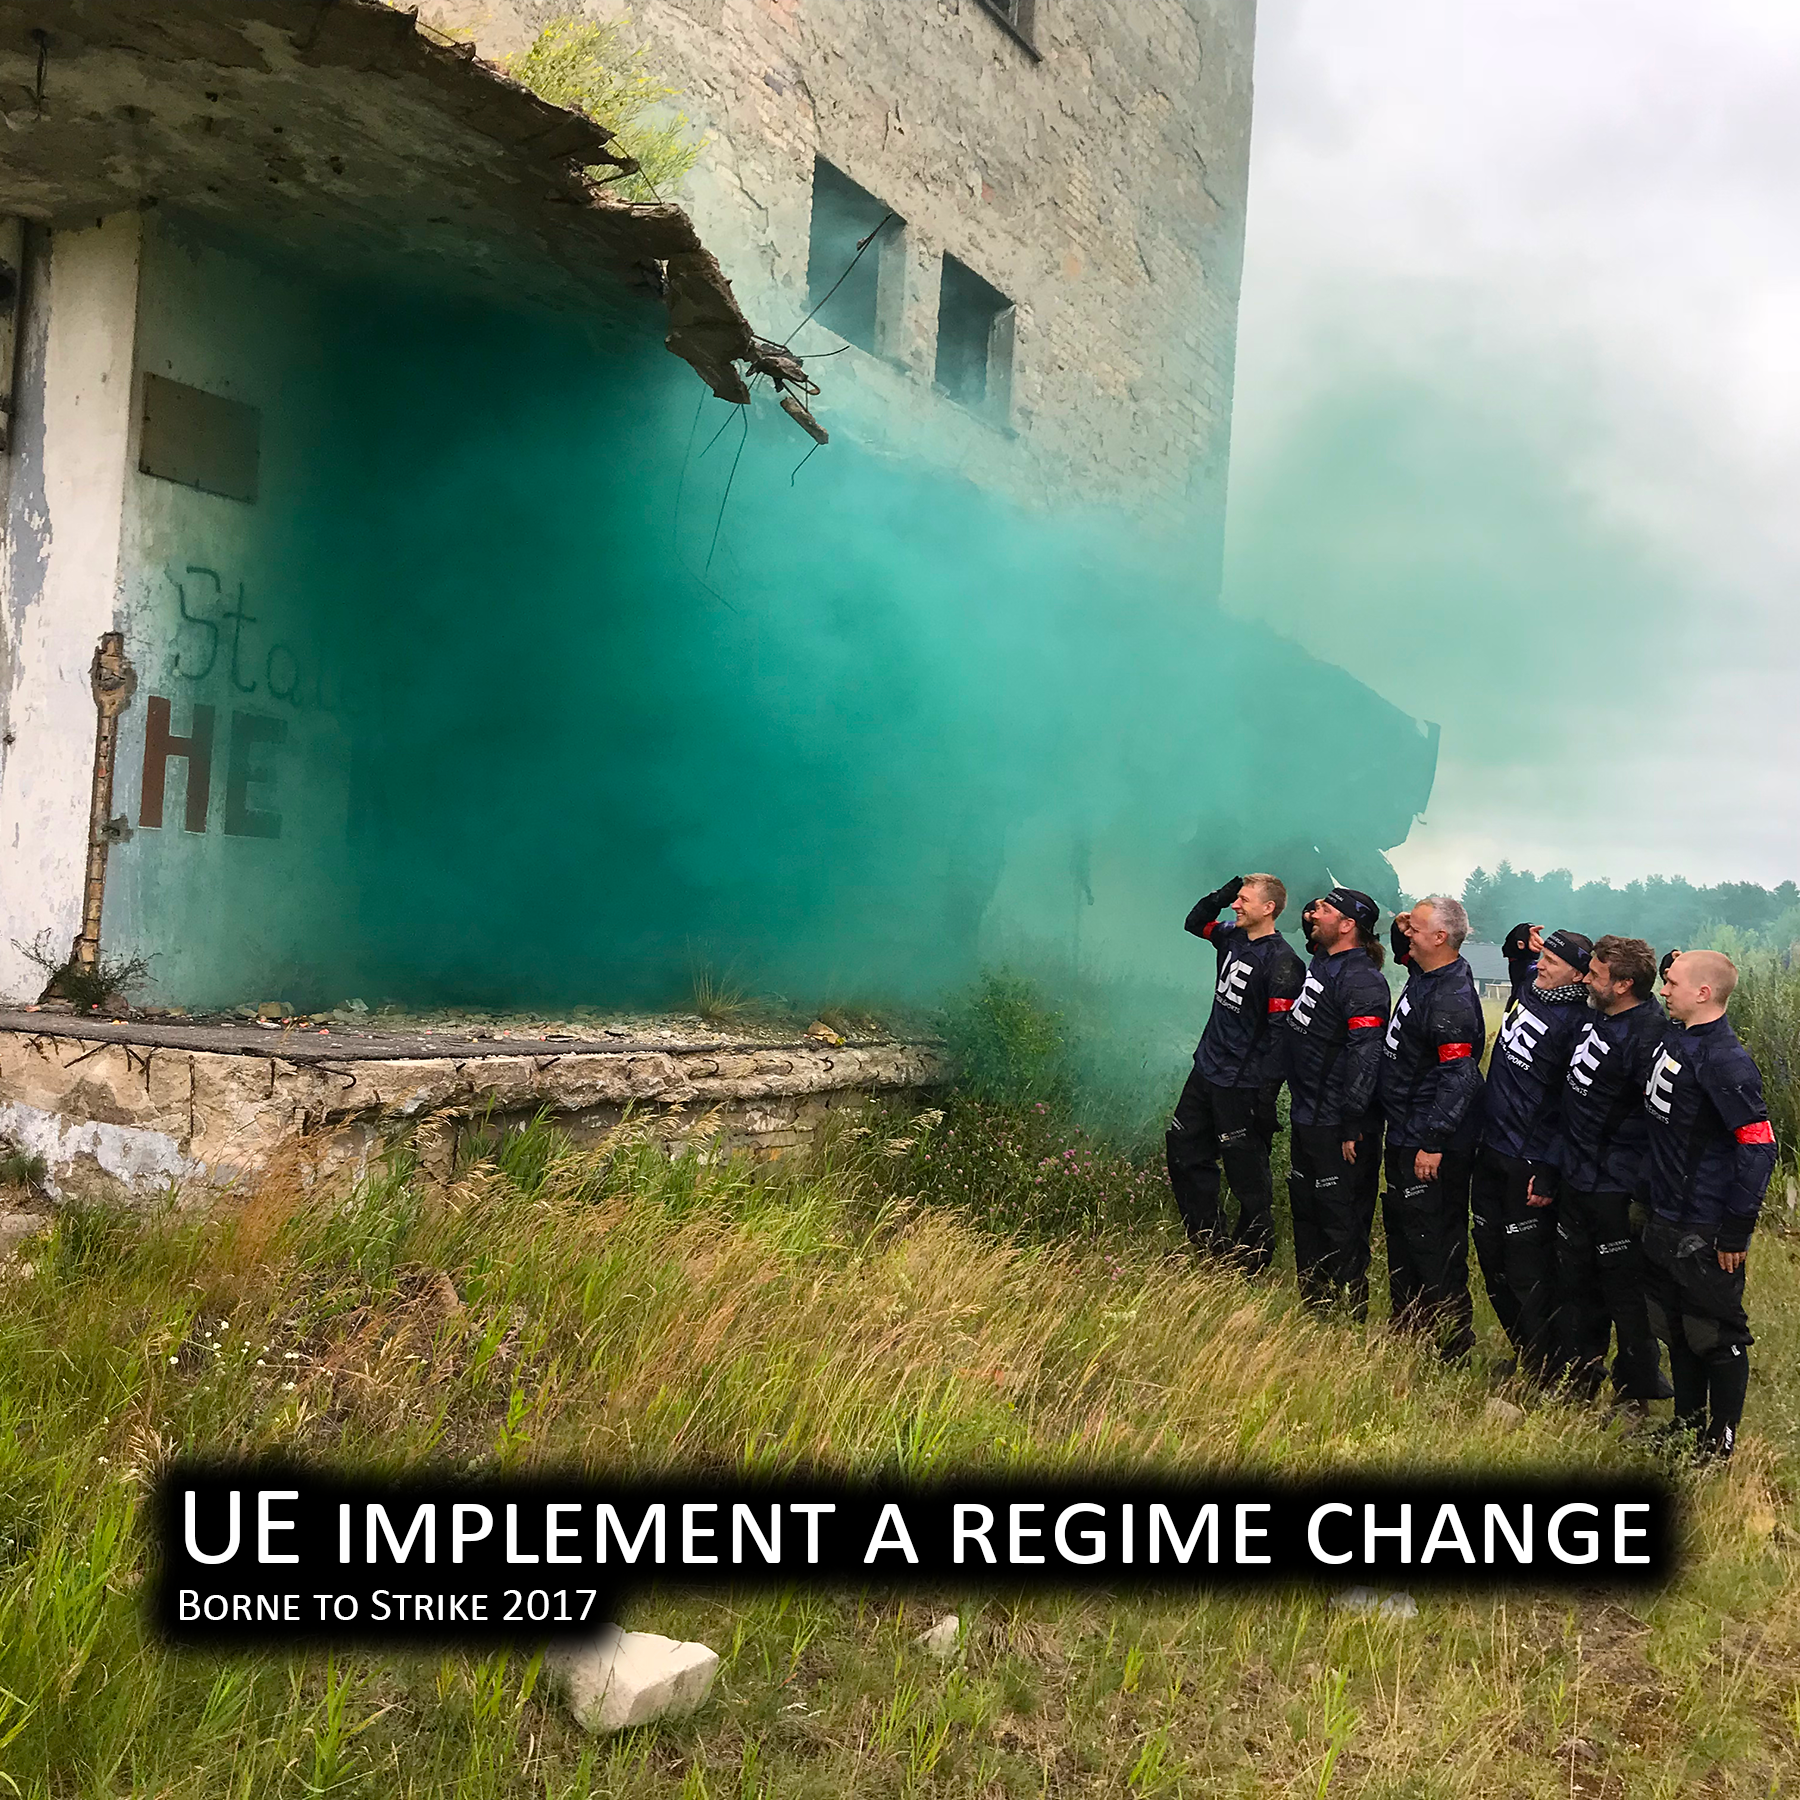 UE implement a regime change